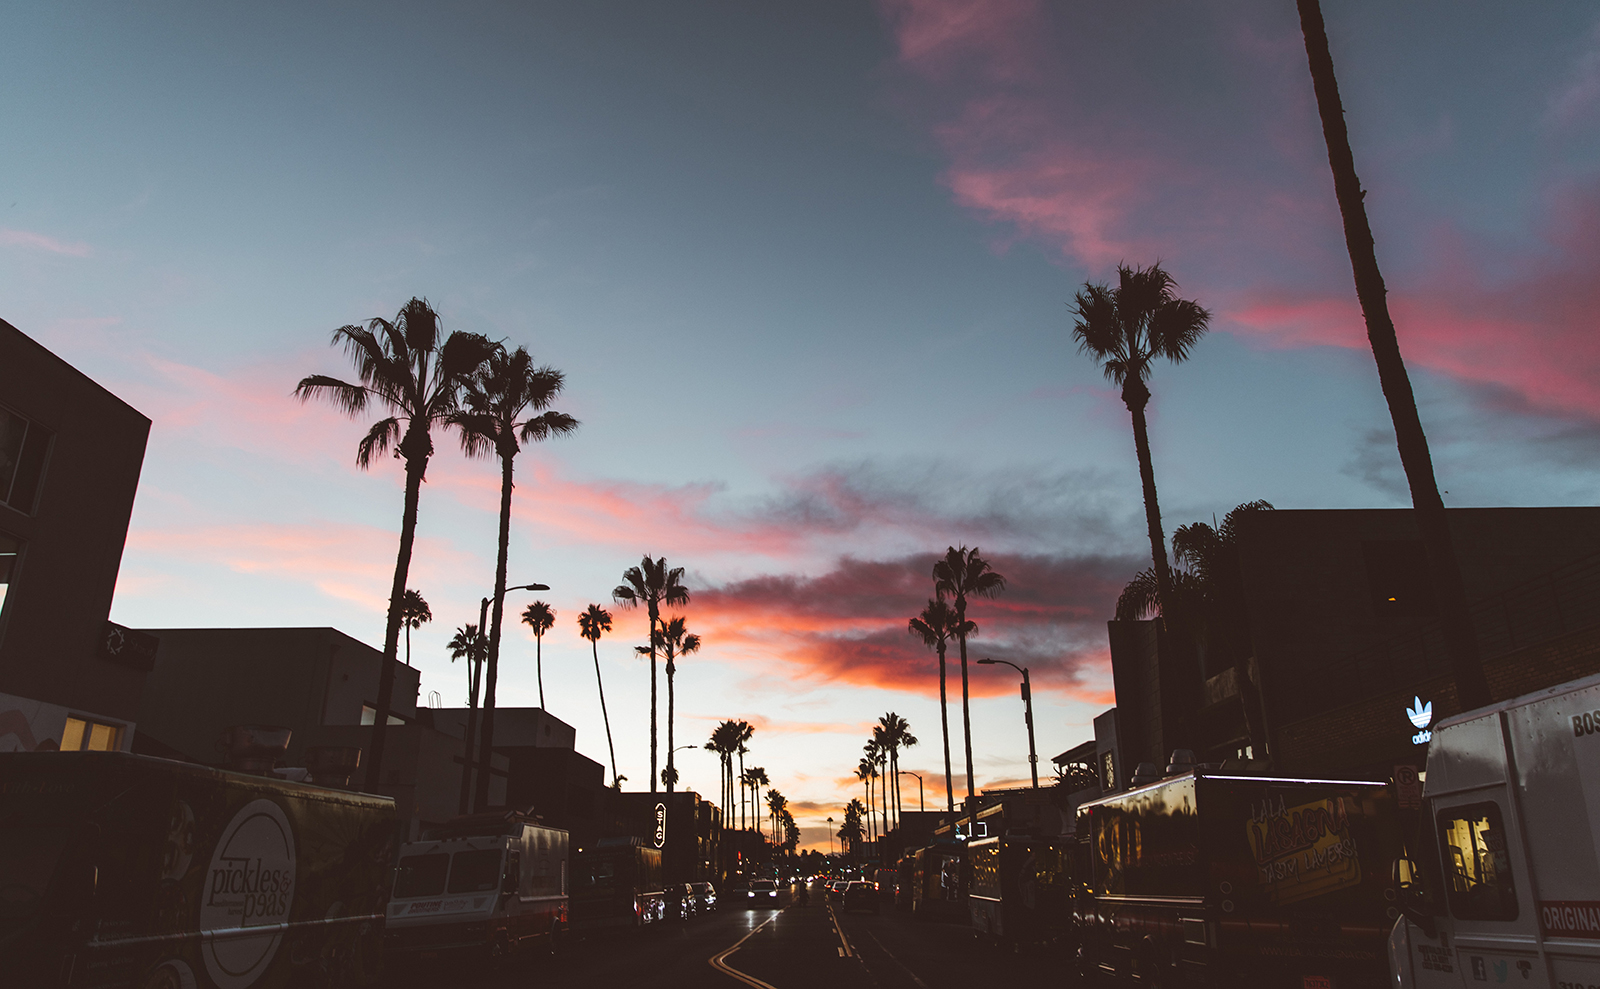 a street in Los Angeles at sunset